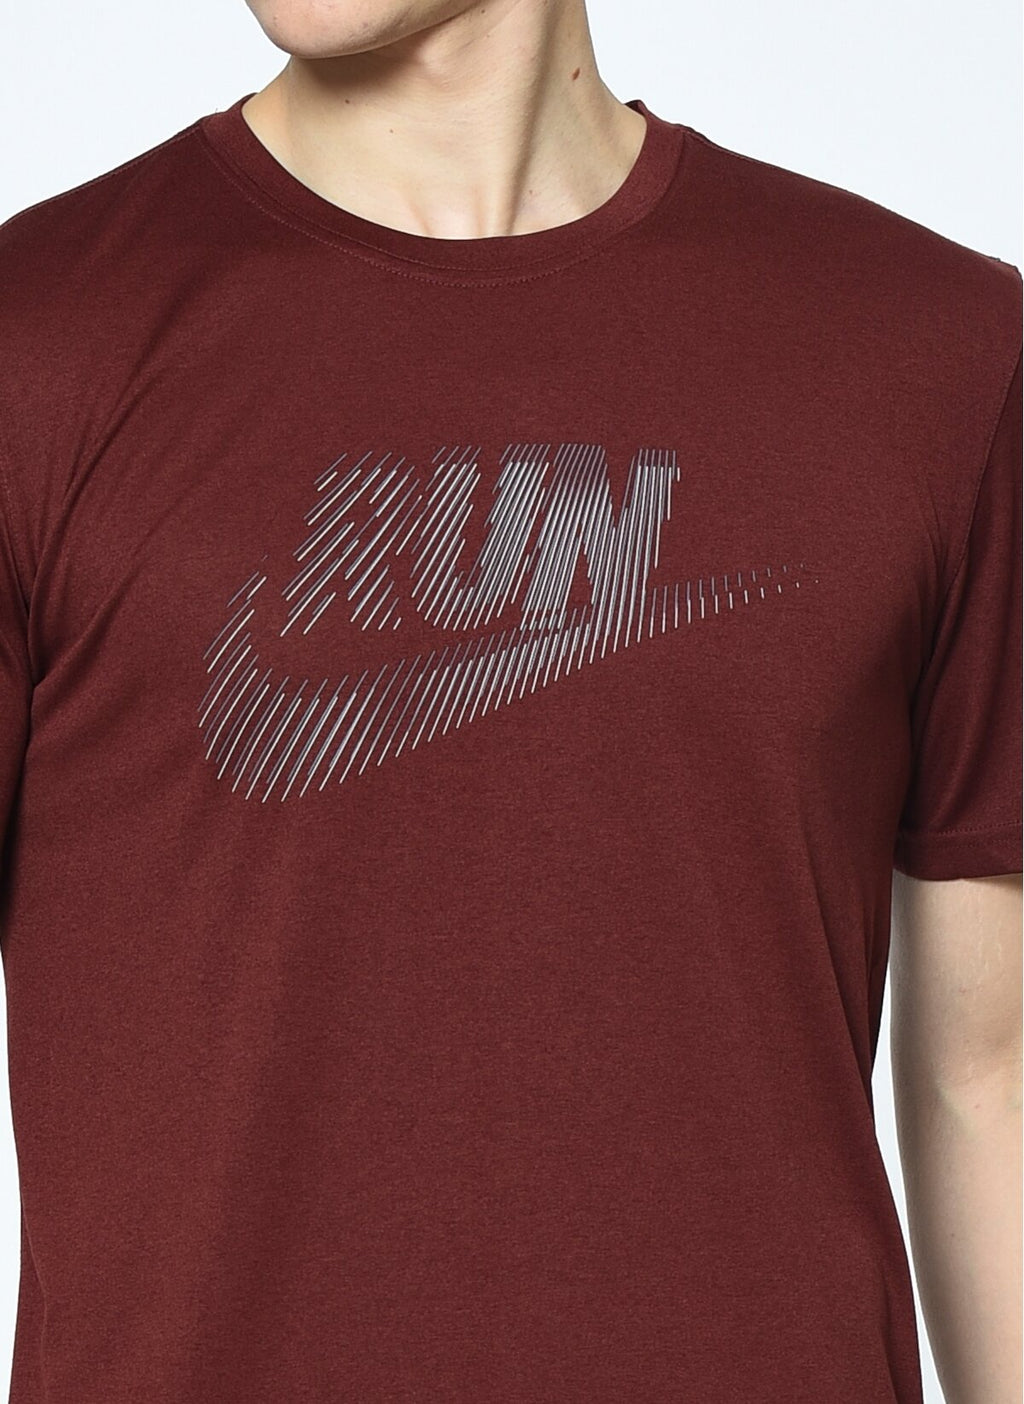 Men's Nike Dry Run Anti-Odor Shirt.       874963-619